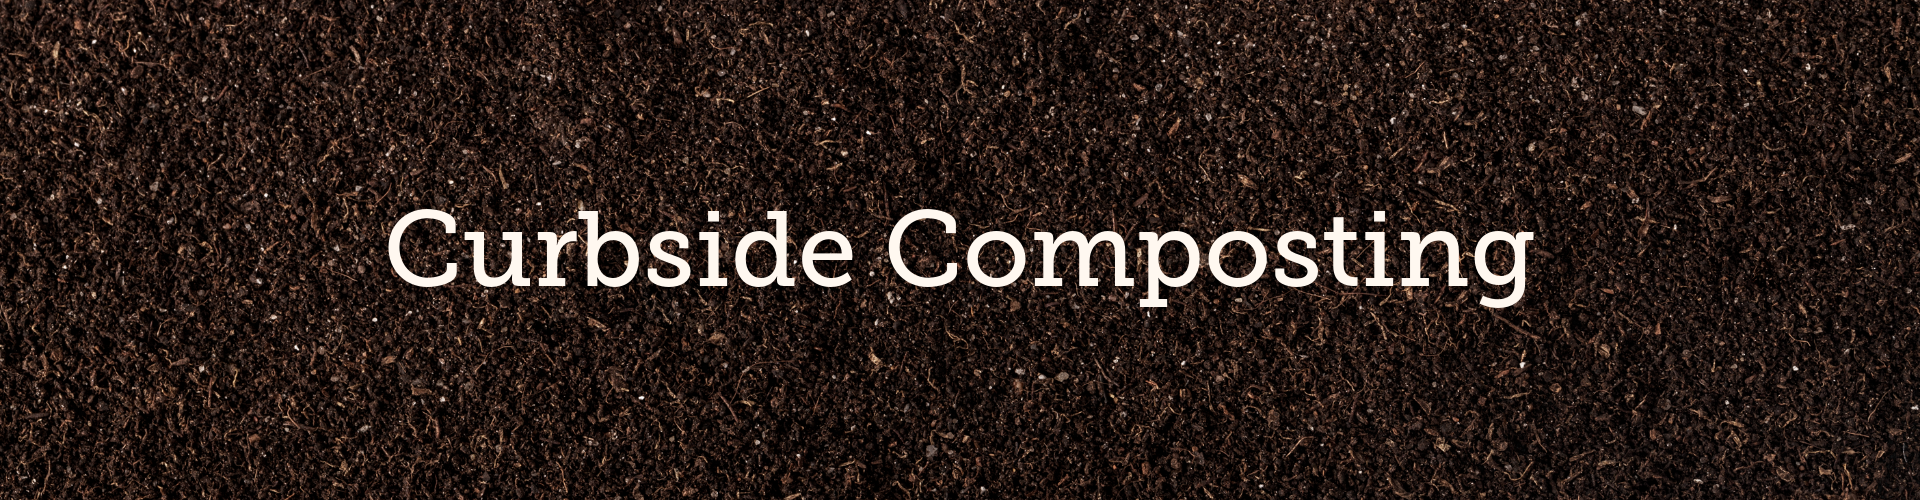 Curbside Composting.png